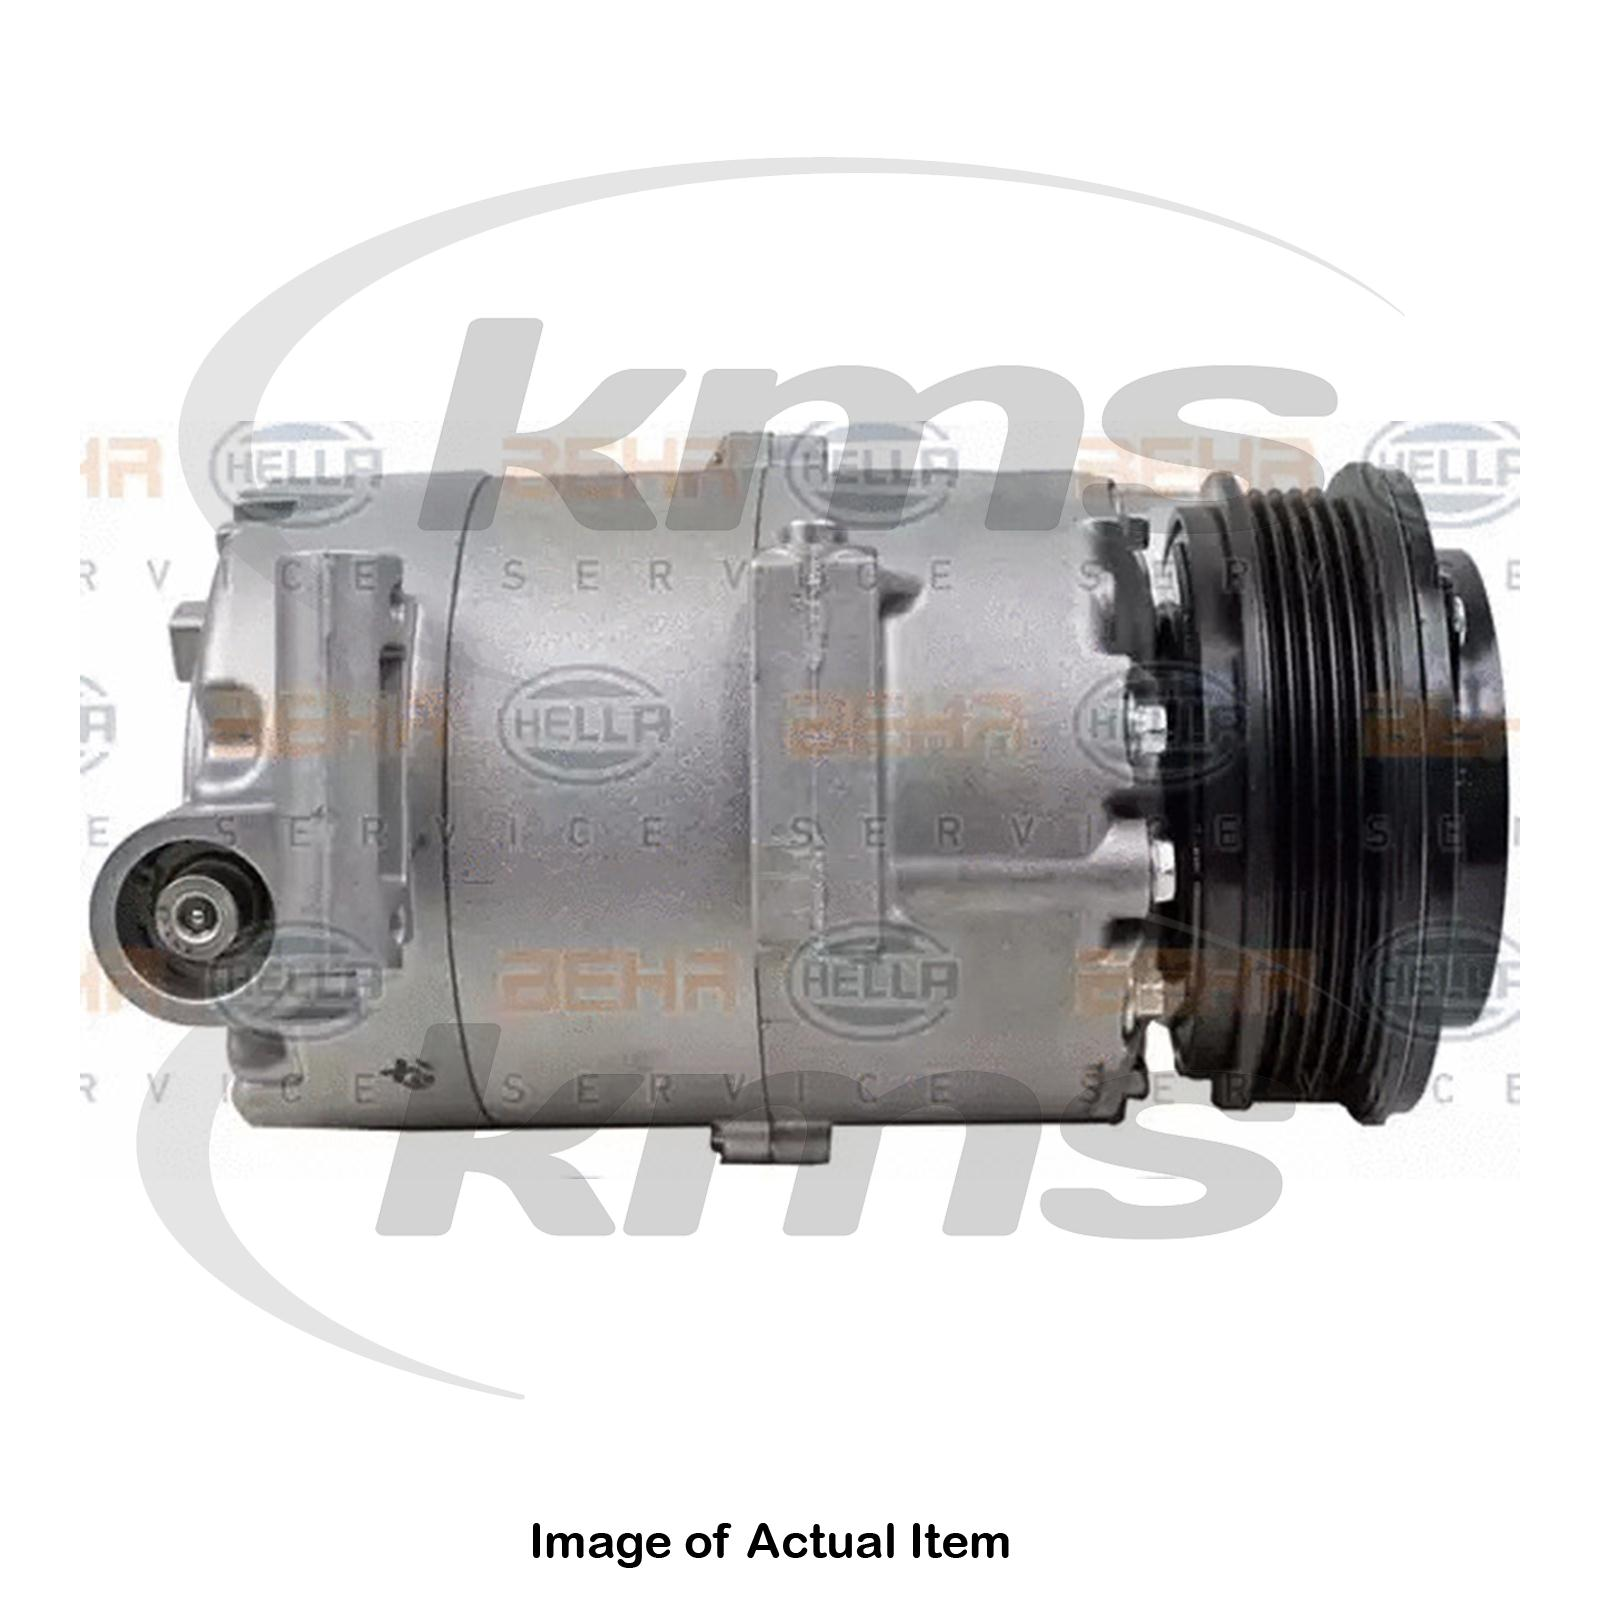 New Genuine Hella Air Conditioning Compressor 8fk 351 339 421 Top Evaporator Isuzu Panther R134 Sentinel German Quality